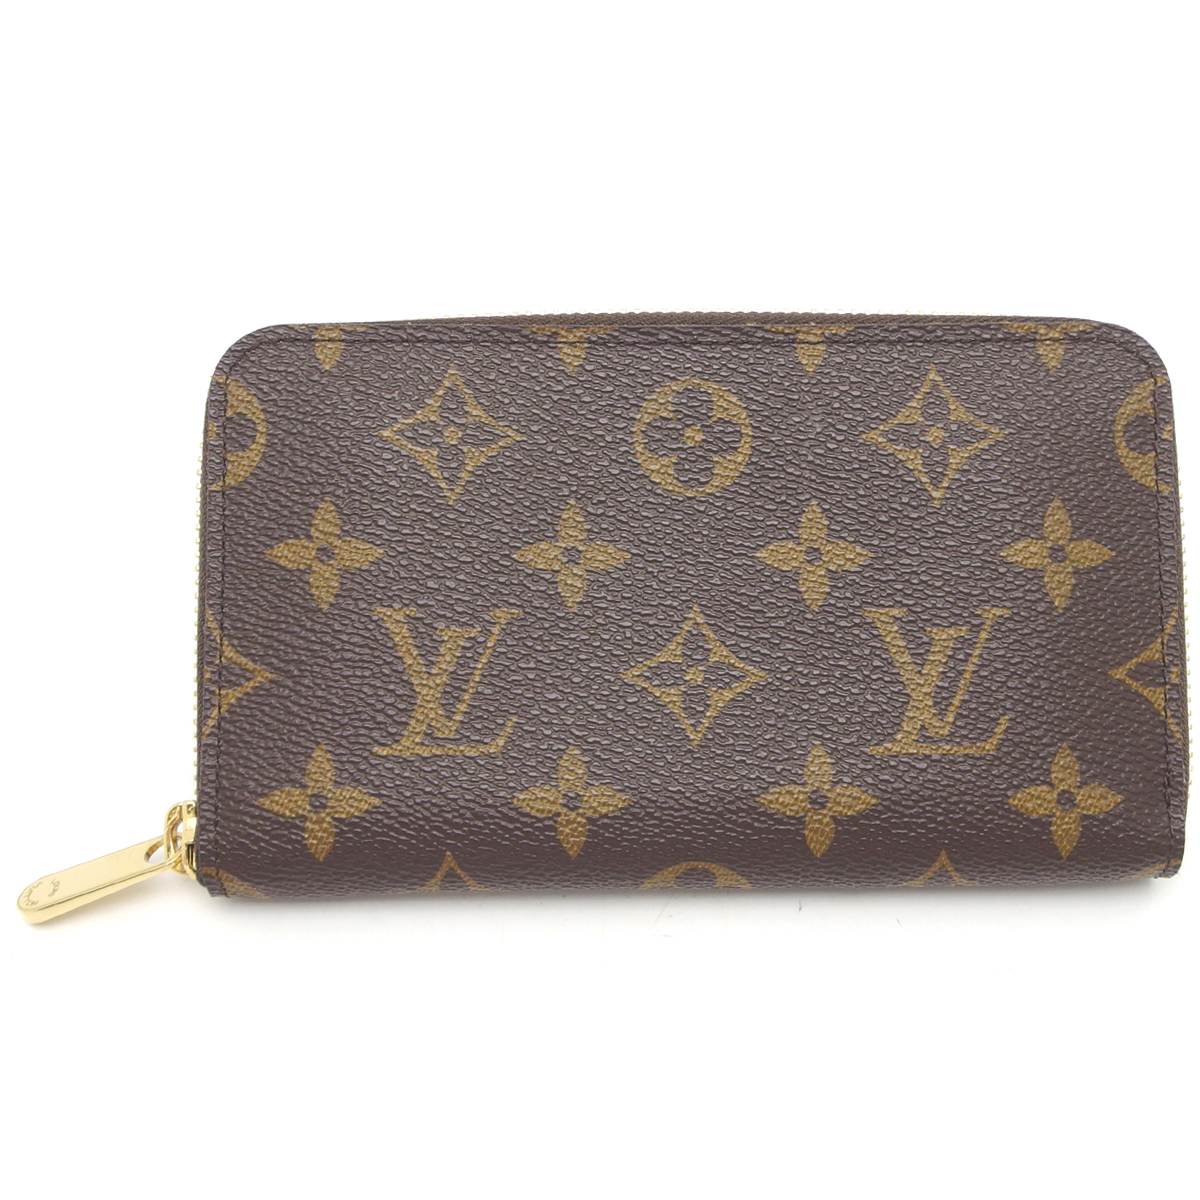 Louis Vuitton/ 【中古】 M61440 ルイヴィトン/ モノグラム/ ジッピー・コンパクトウォレット/